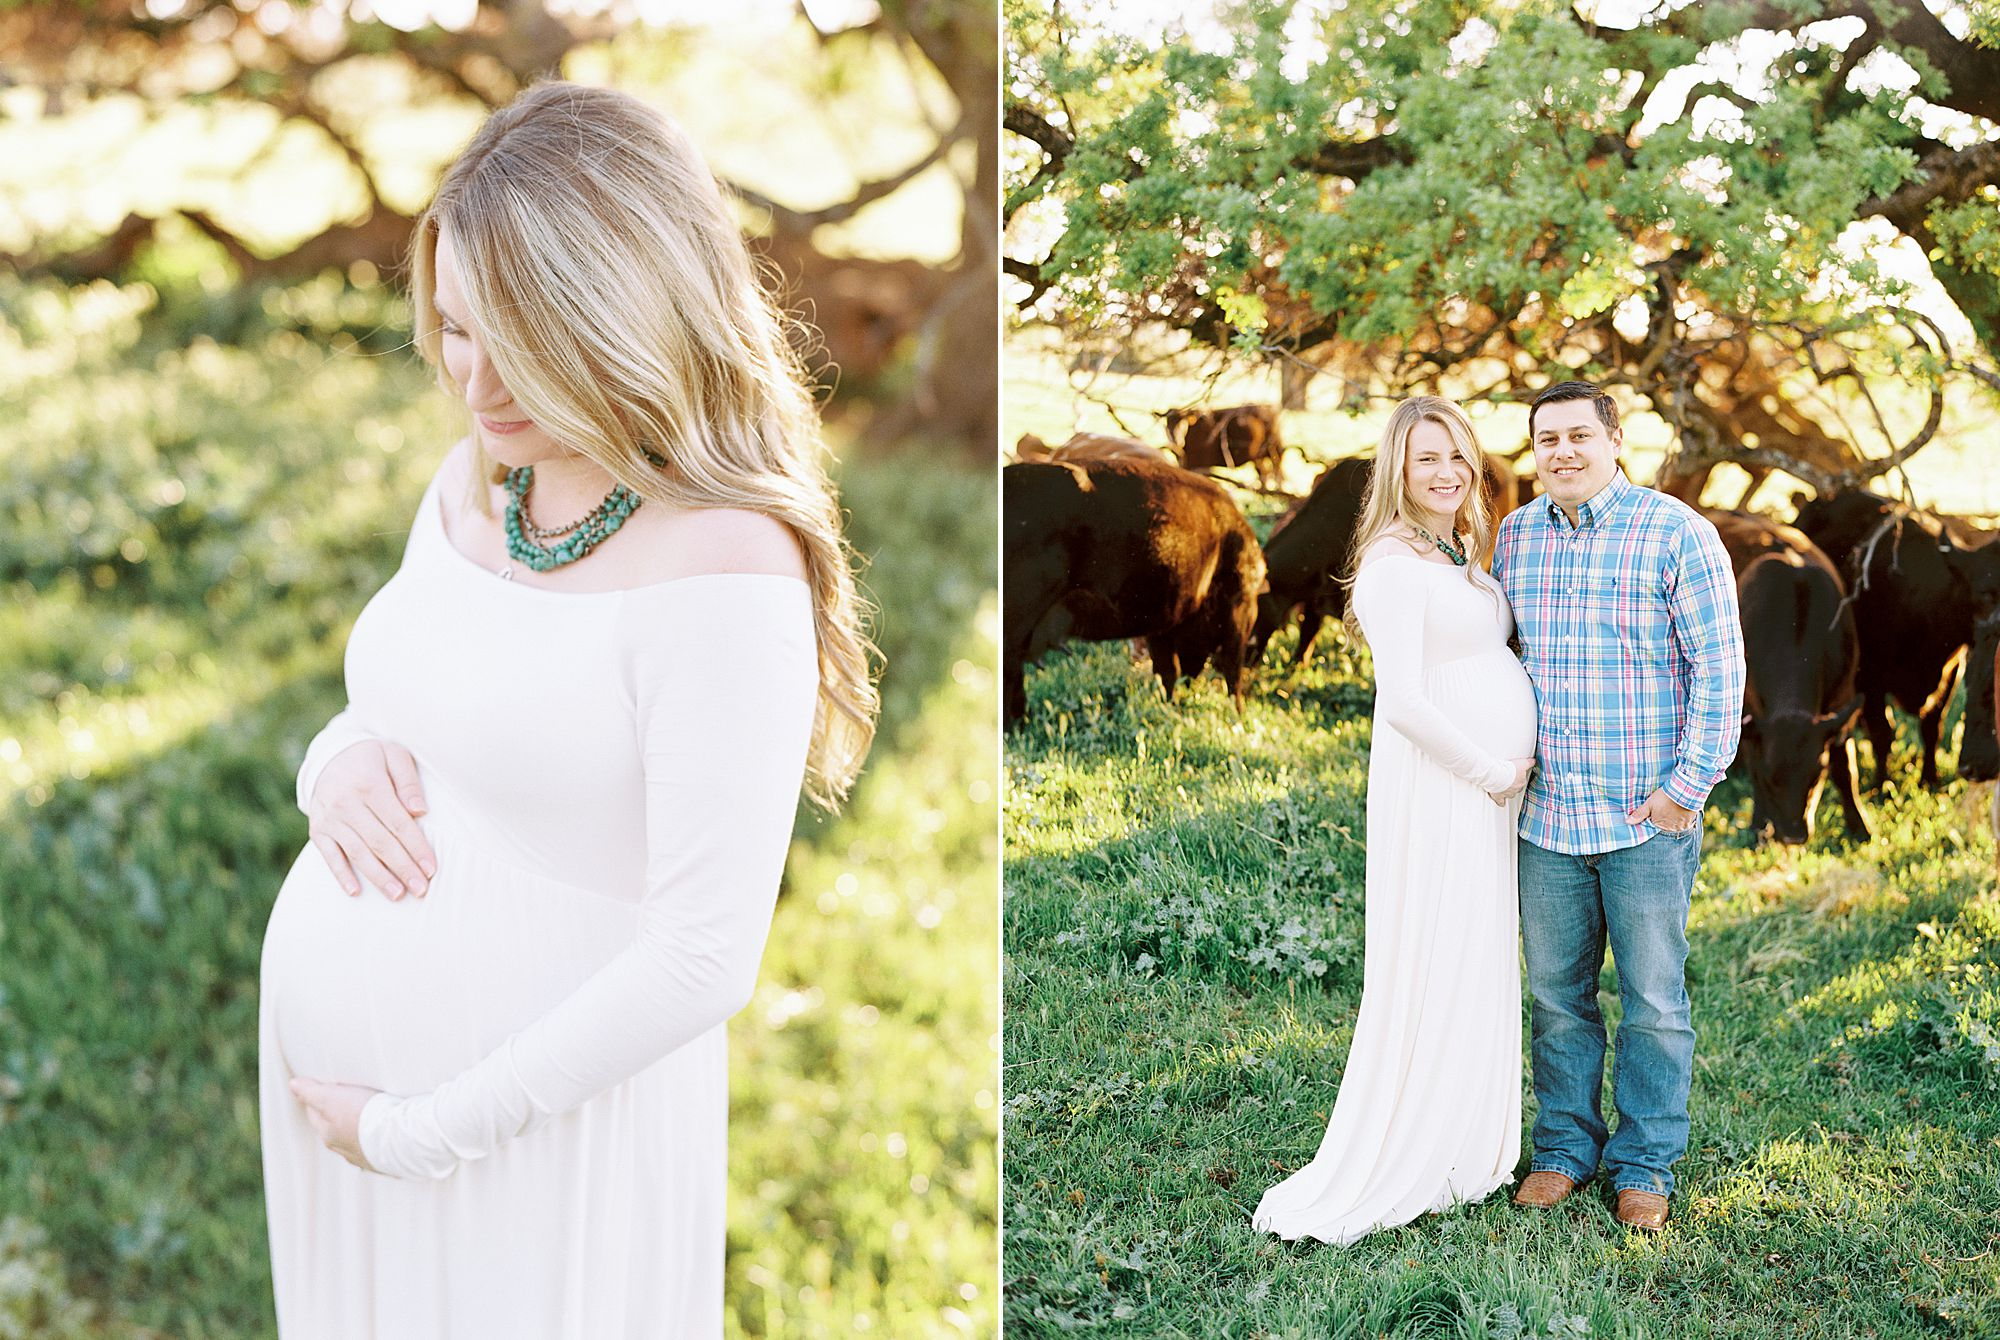 Sheridan Maternity Session - Lexie and Nick - Sacramento Maternity Photos by Ashley Baumgartner - Farmland, 4H Maternity with Cows_0005.jpg